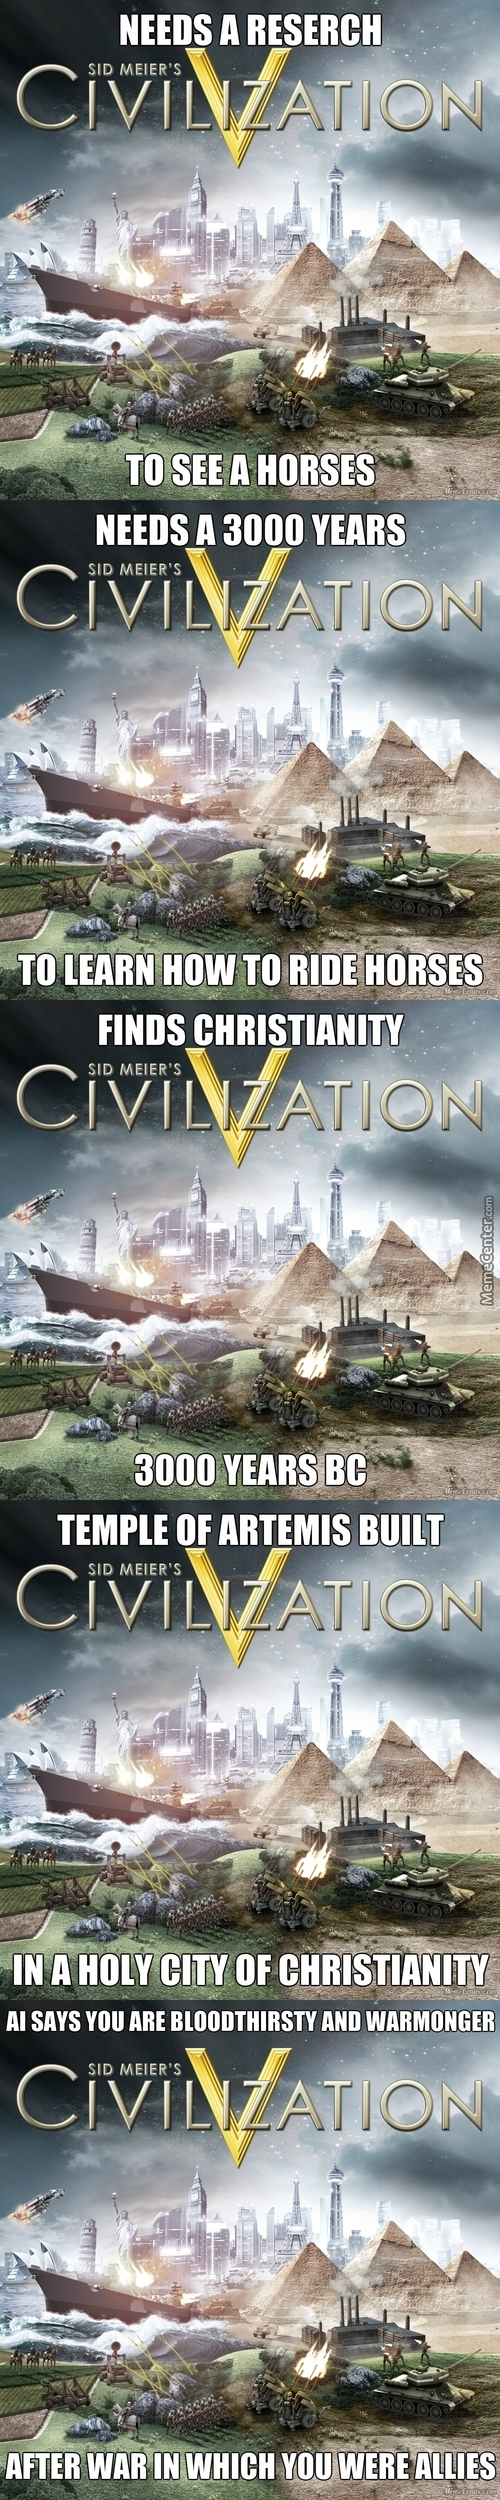 Civilization Logic